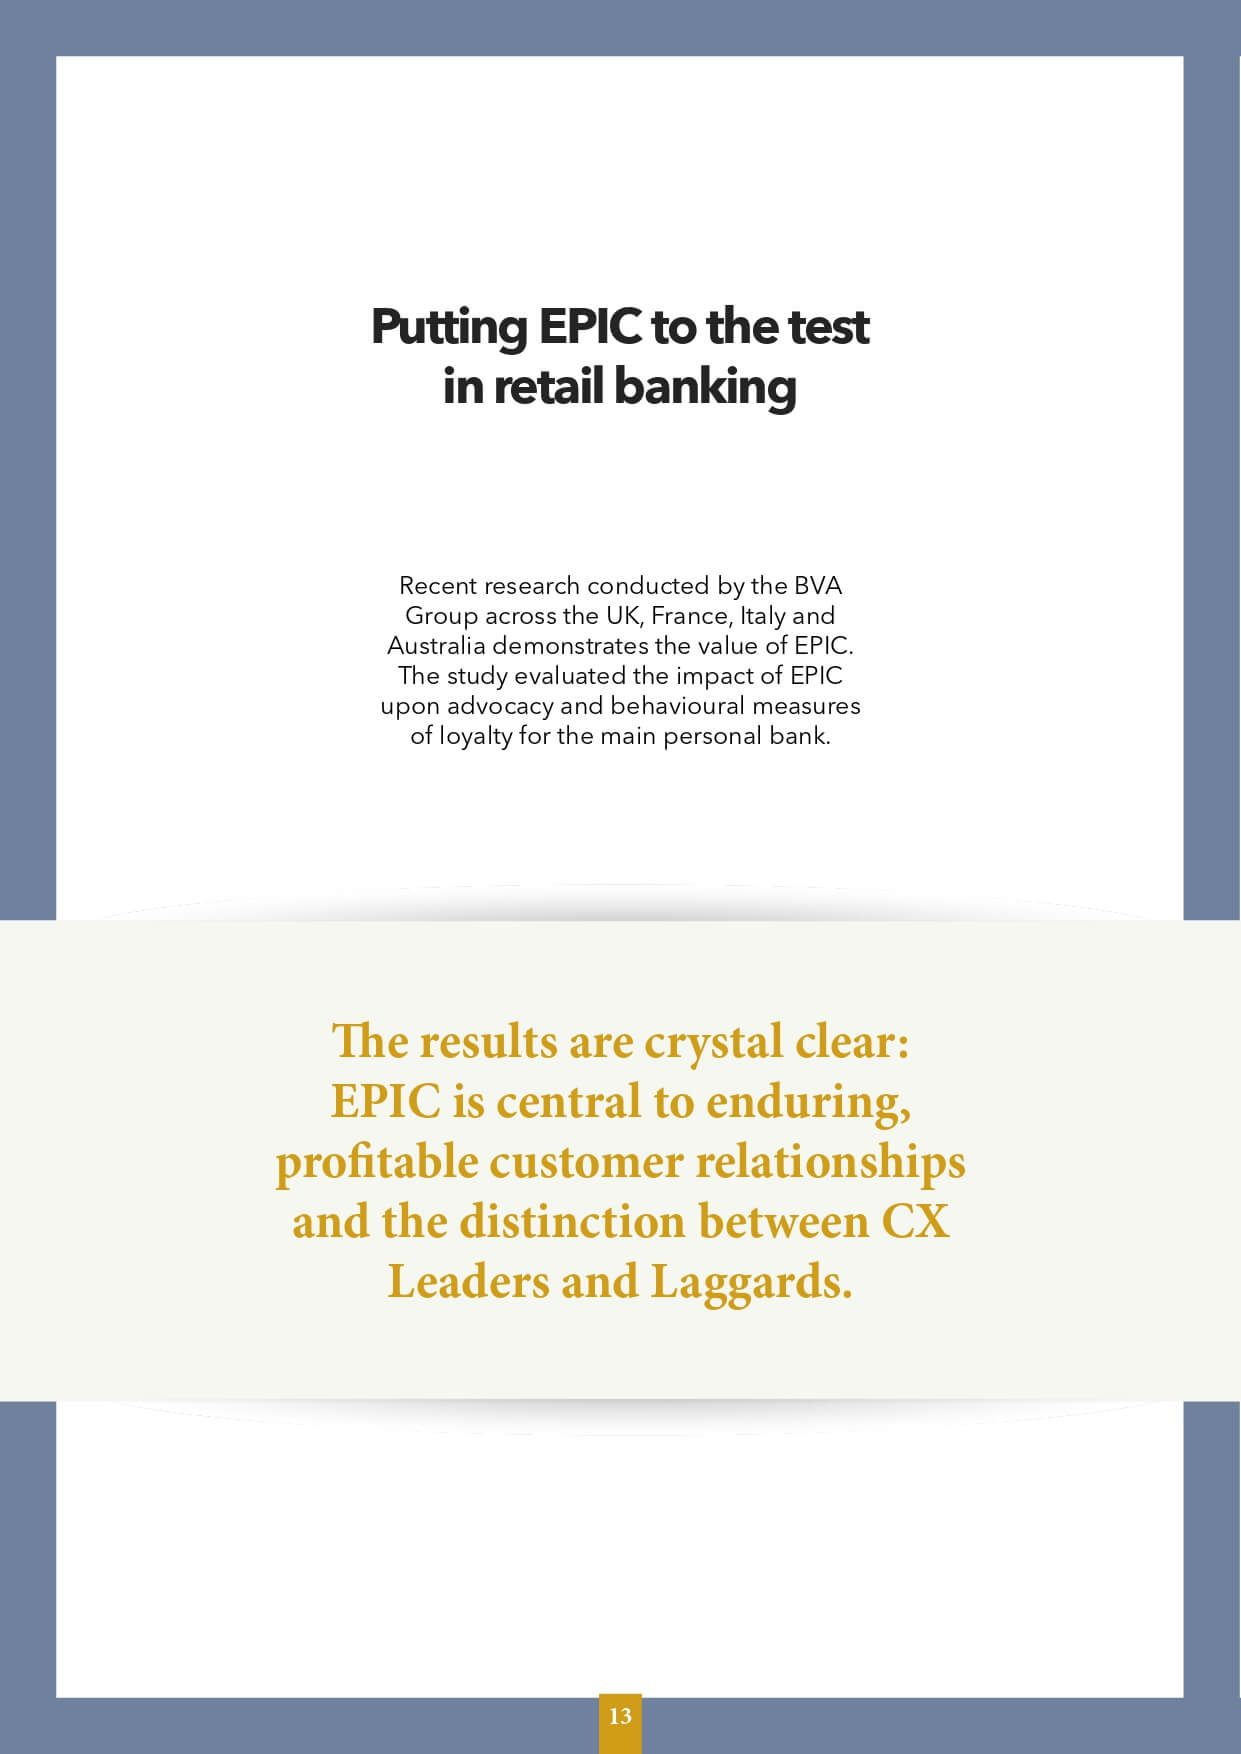 Epic Retail Banking Pov 2021 10 Pages To Jpg 0011